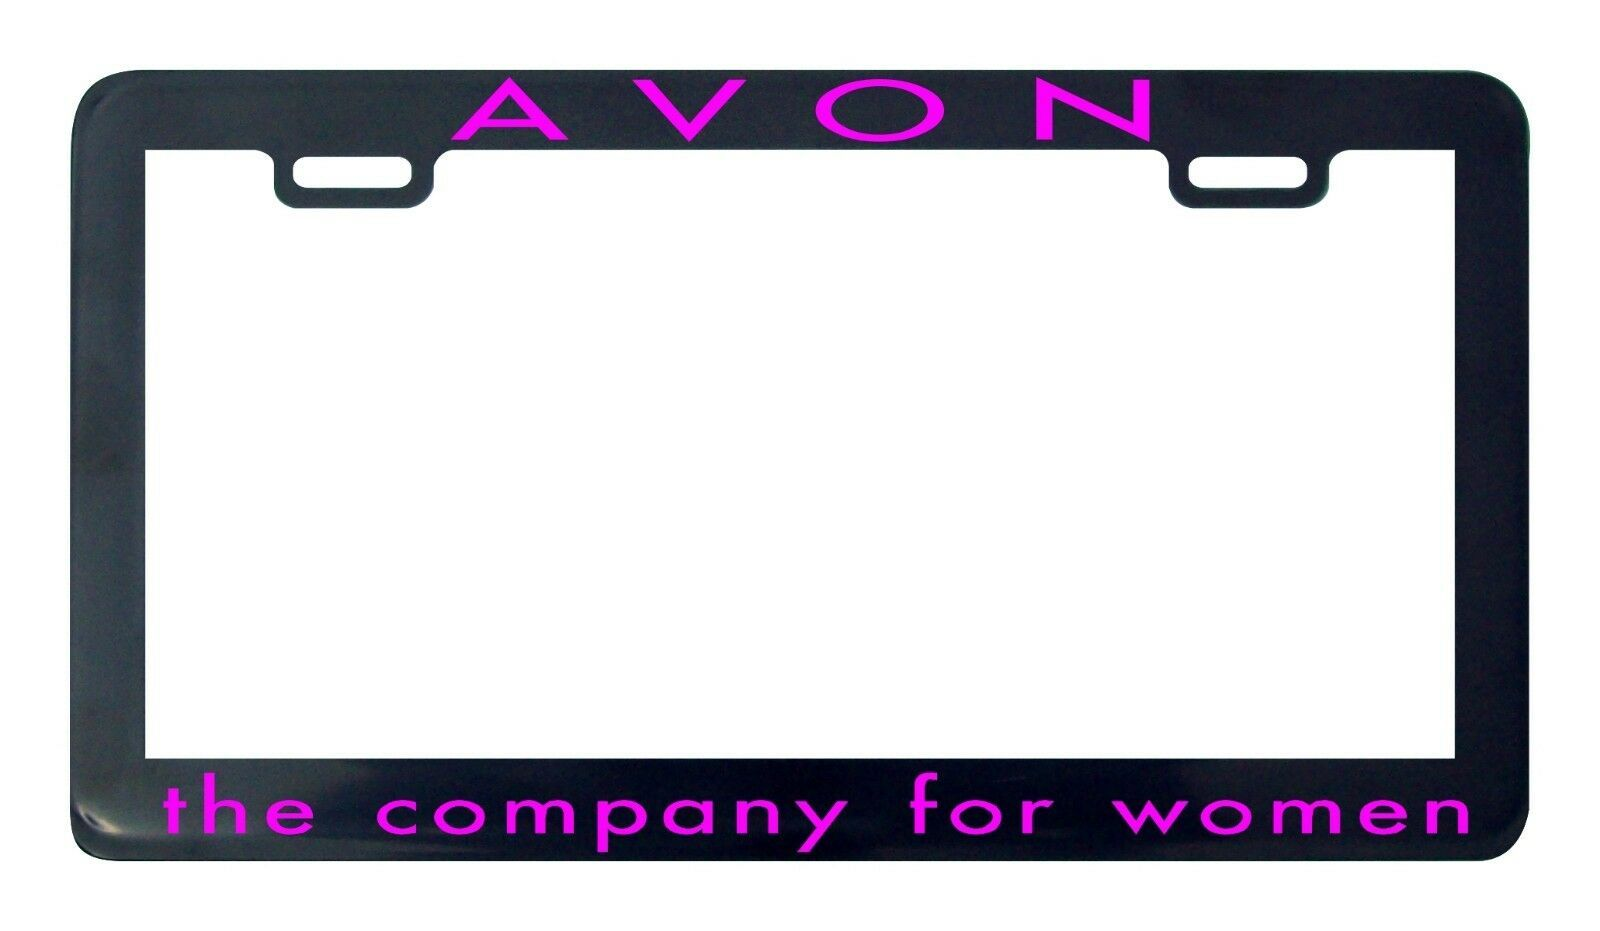 Primary image for Avon the company for women license plate frame holder